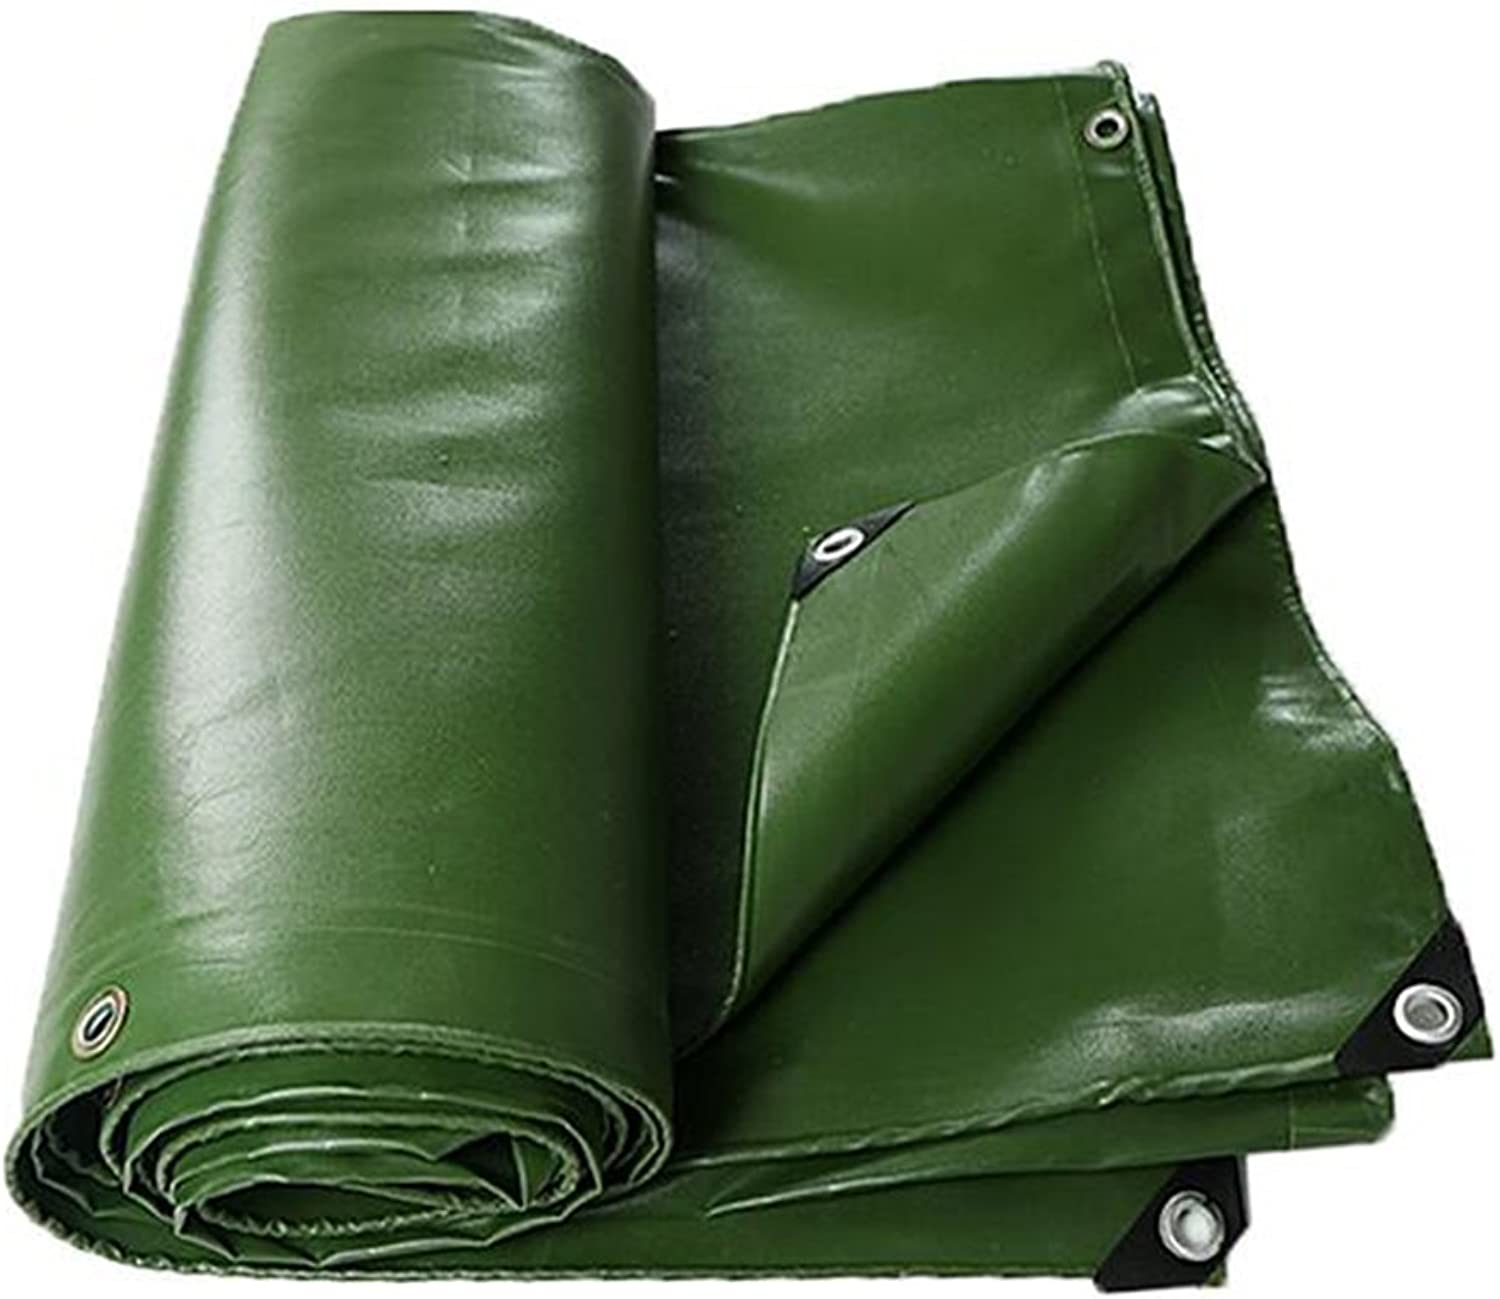 ZRTarps Tarpaulin Thick Waterproof Cloth Canvas Truck Tarpaulin Linoleum Sun Shade Cloth WearResistant Shed Cloth PVC Waterproof 0.7MM  700 g M2 Outdoor Equipment (color   Green, Size   4x6M)